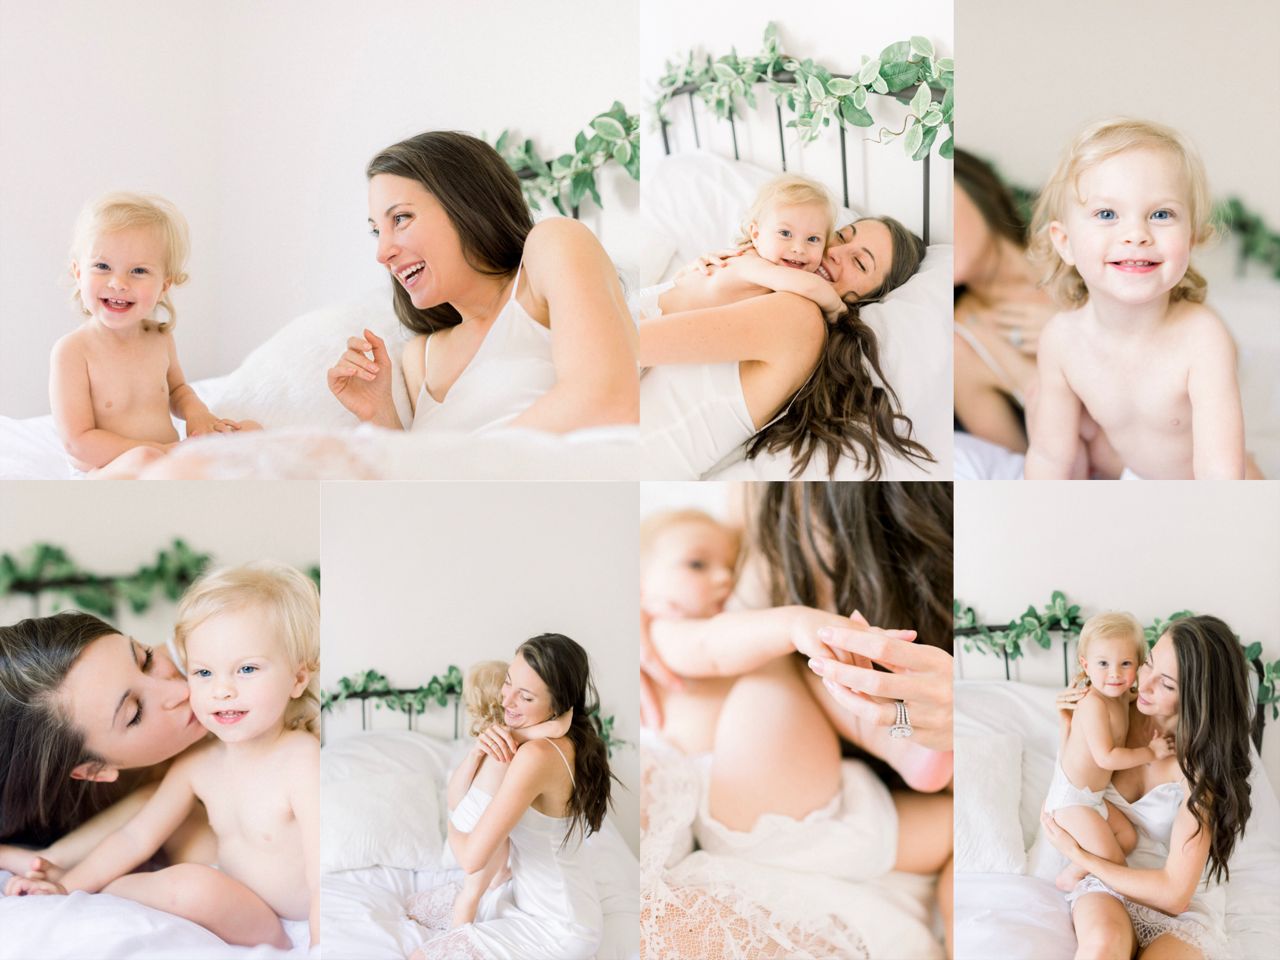 Anna + JoJo | A Lovely Mommy and Me Mini Photography Session | Noblesville Family Portrait Photos Photographer